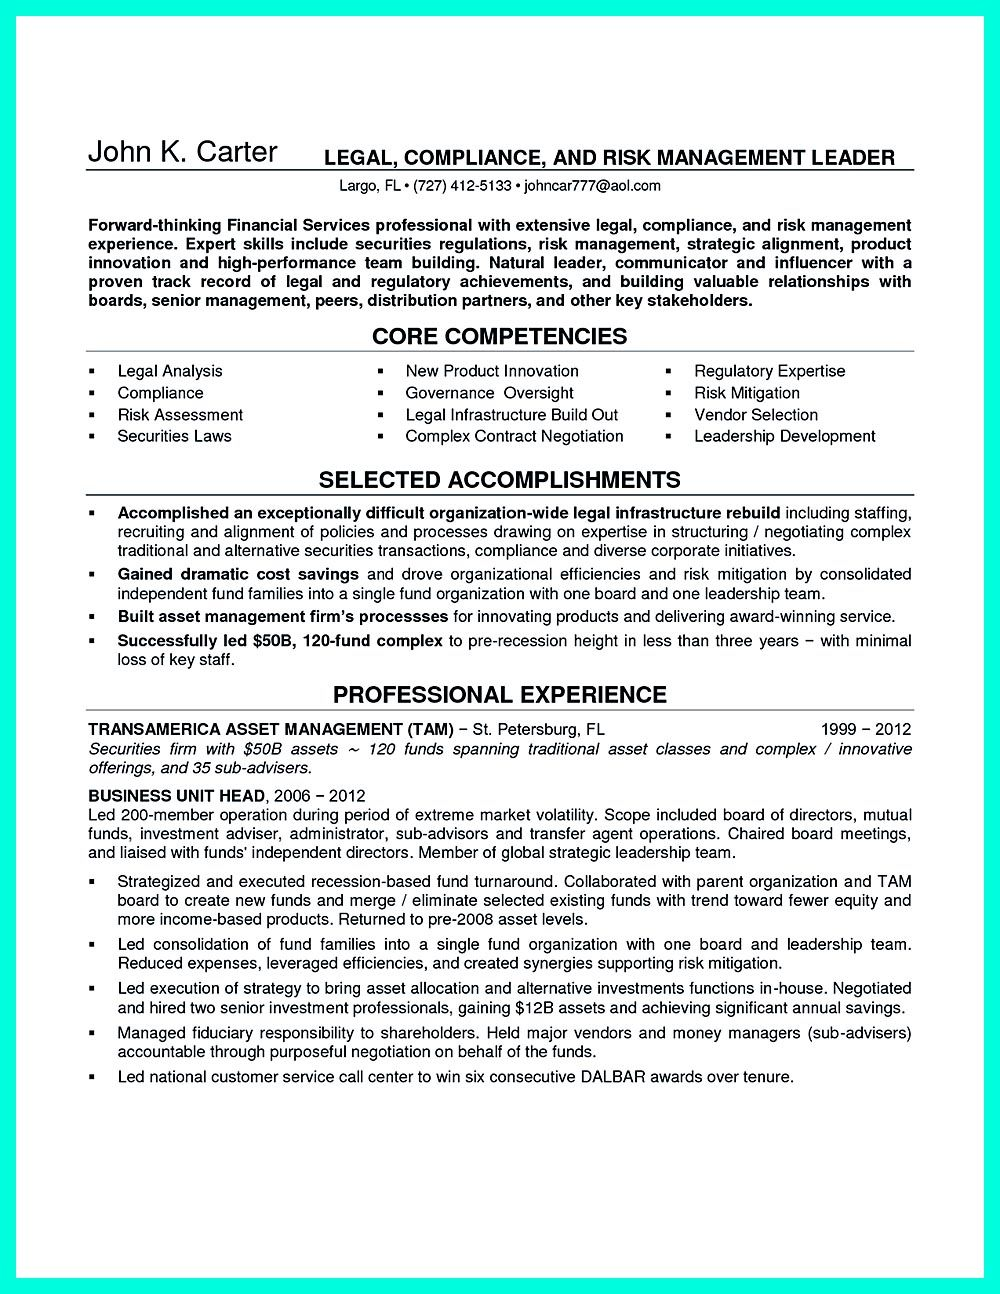 Resume Title Example Compliance Officer Resume Is Well Designed To Get The Attention Of